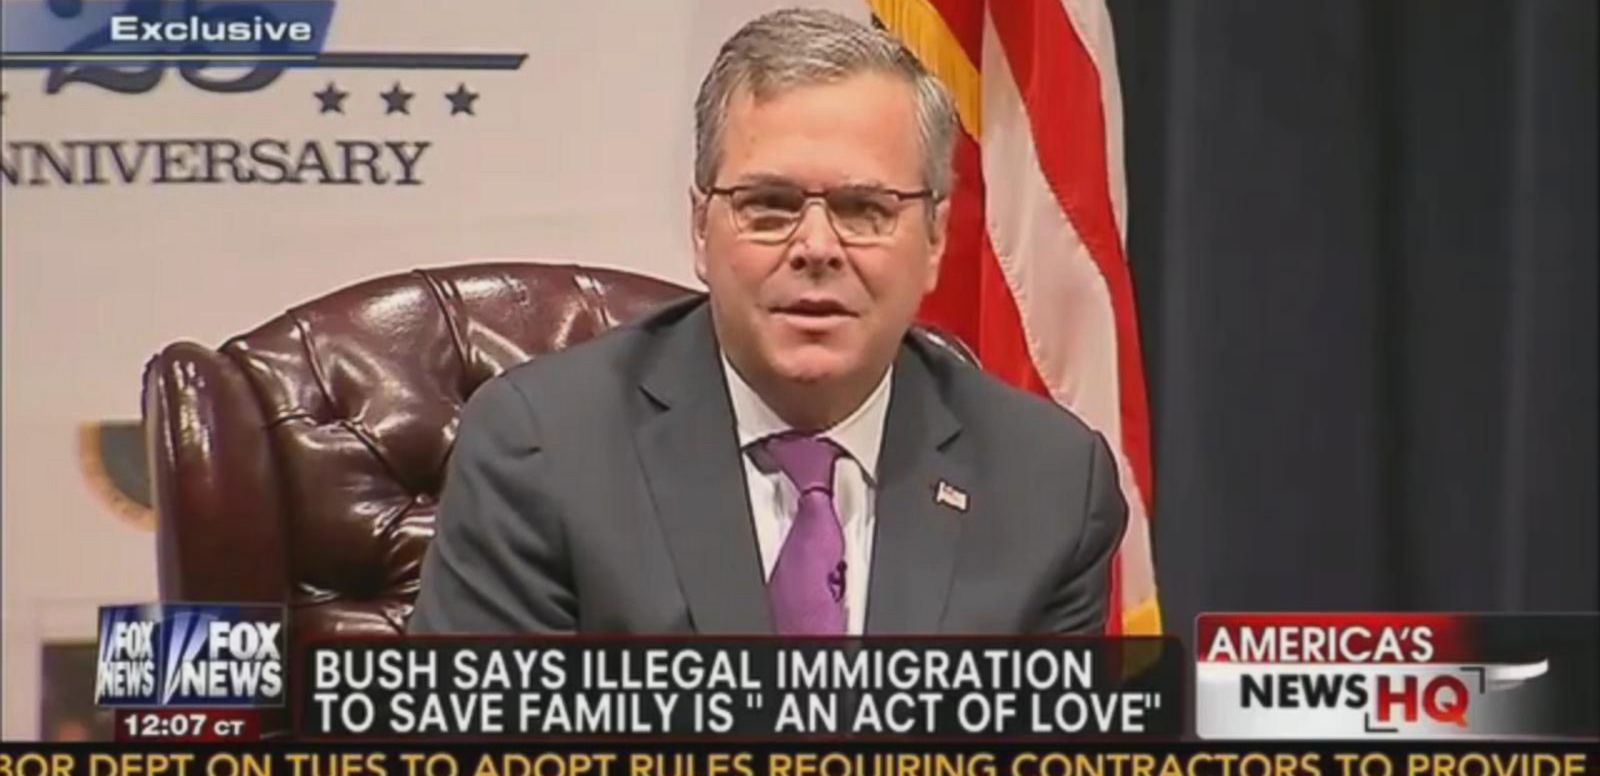 VIDEO: Donald Trump Releases Campaign Video Attacking Jeb Bush